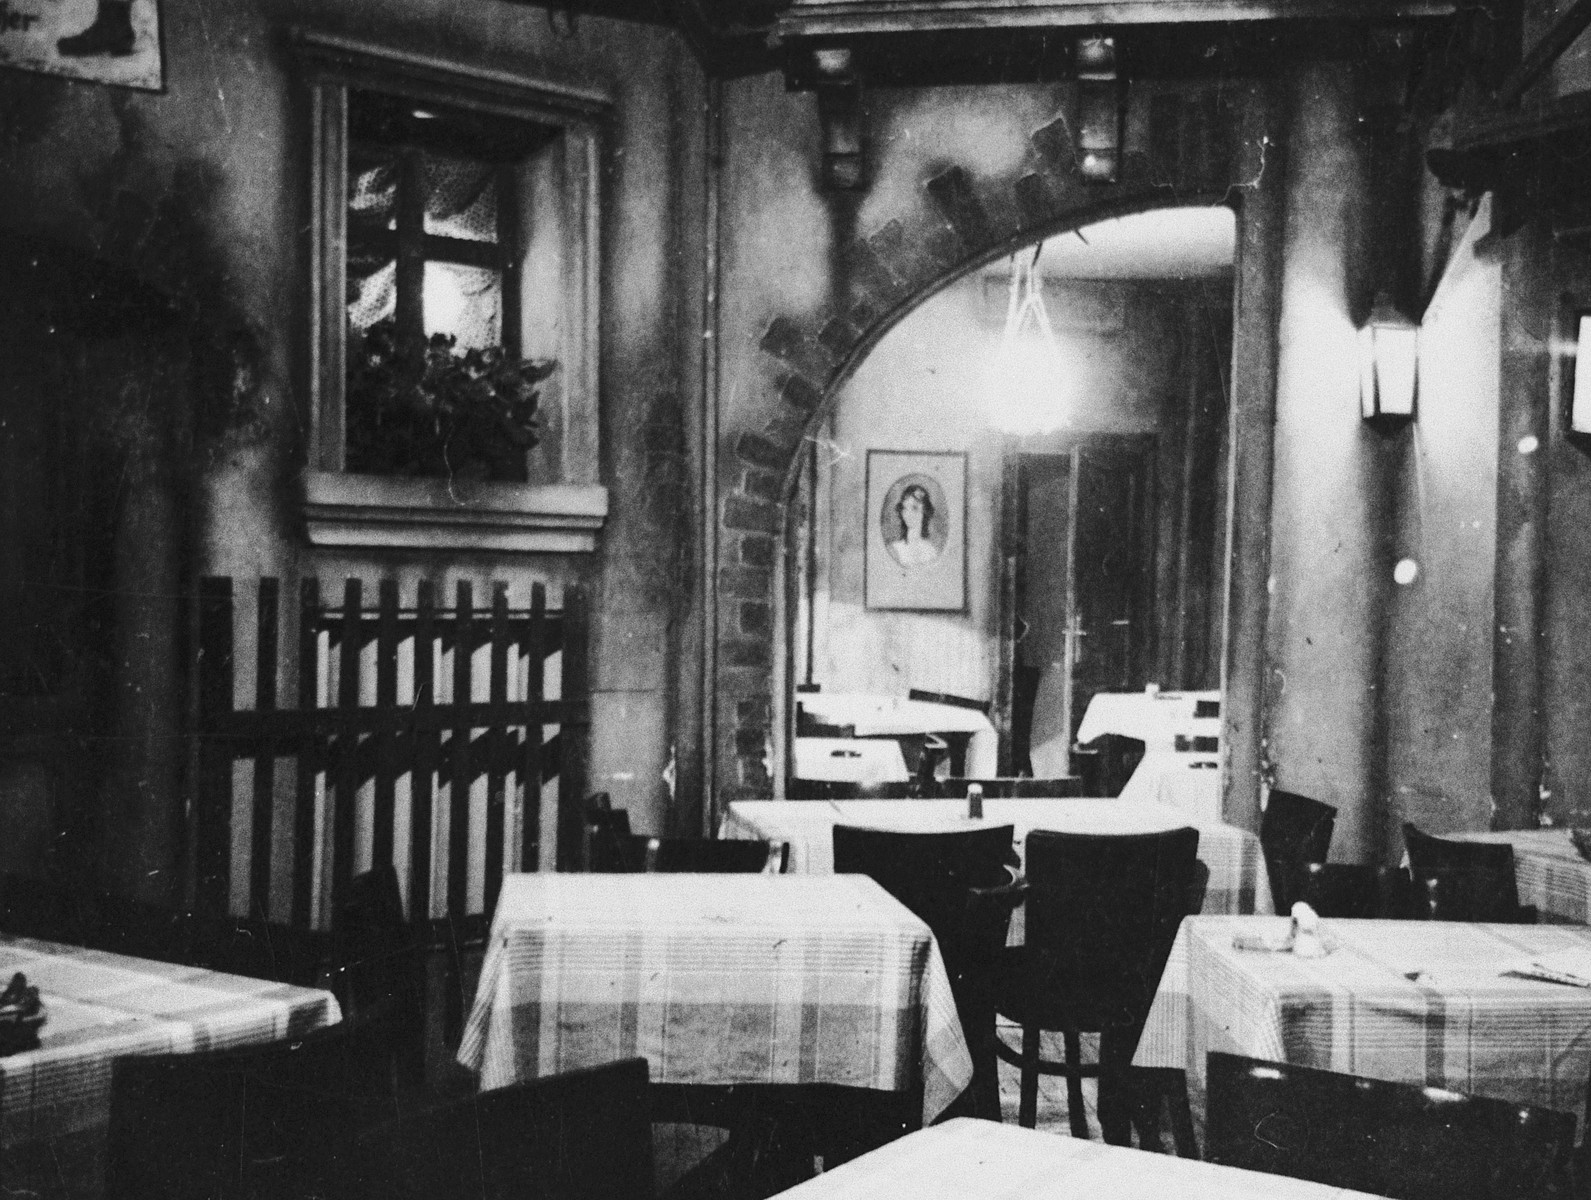 Interior view of the dining room of a kosher boarding house in Budapest.